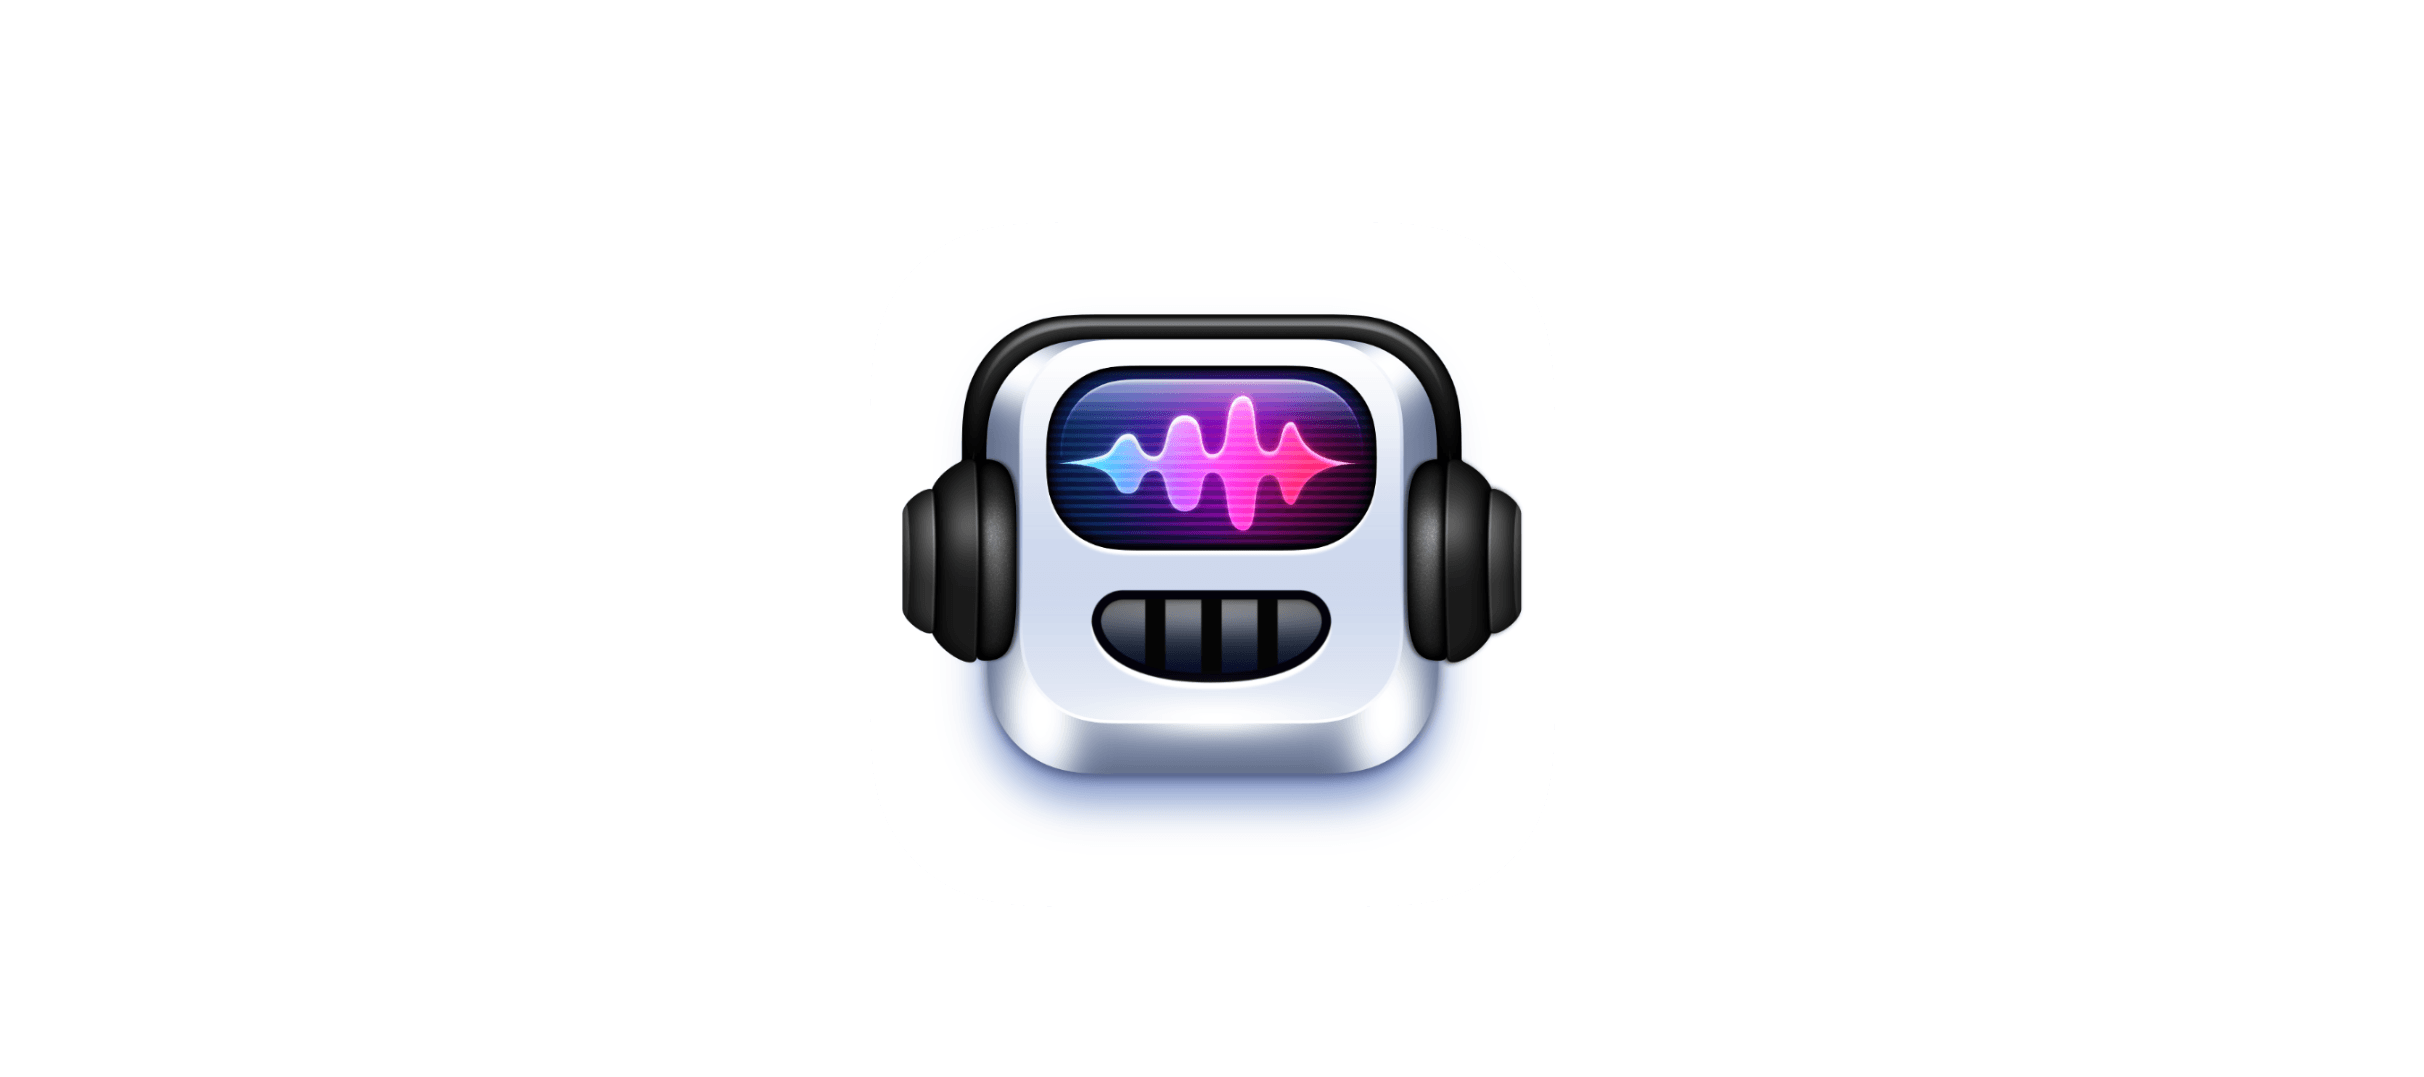 MusicBot, designed by Michael Flarup.